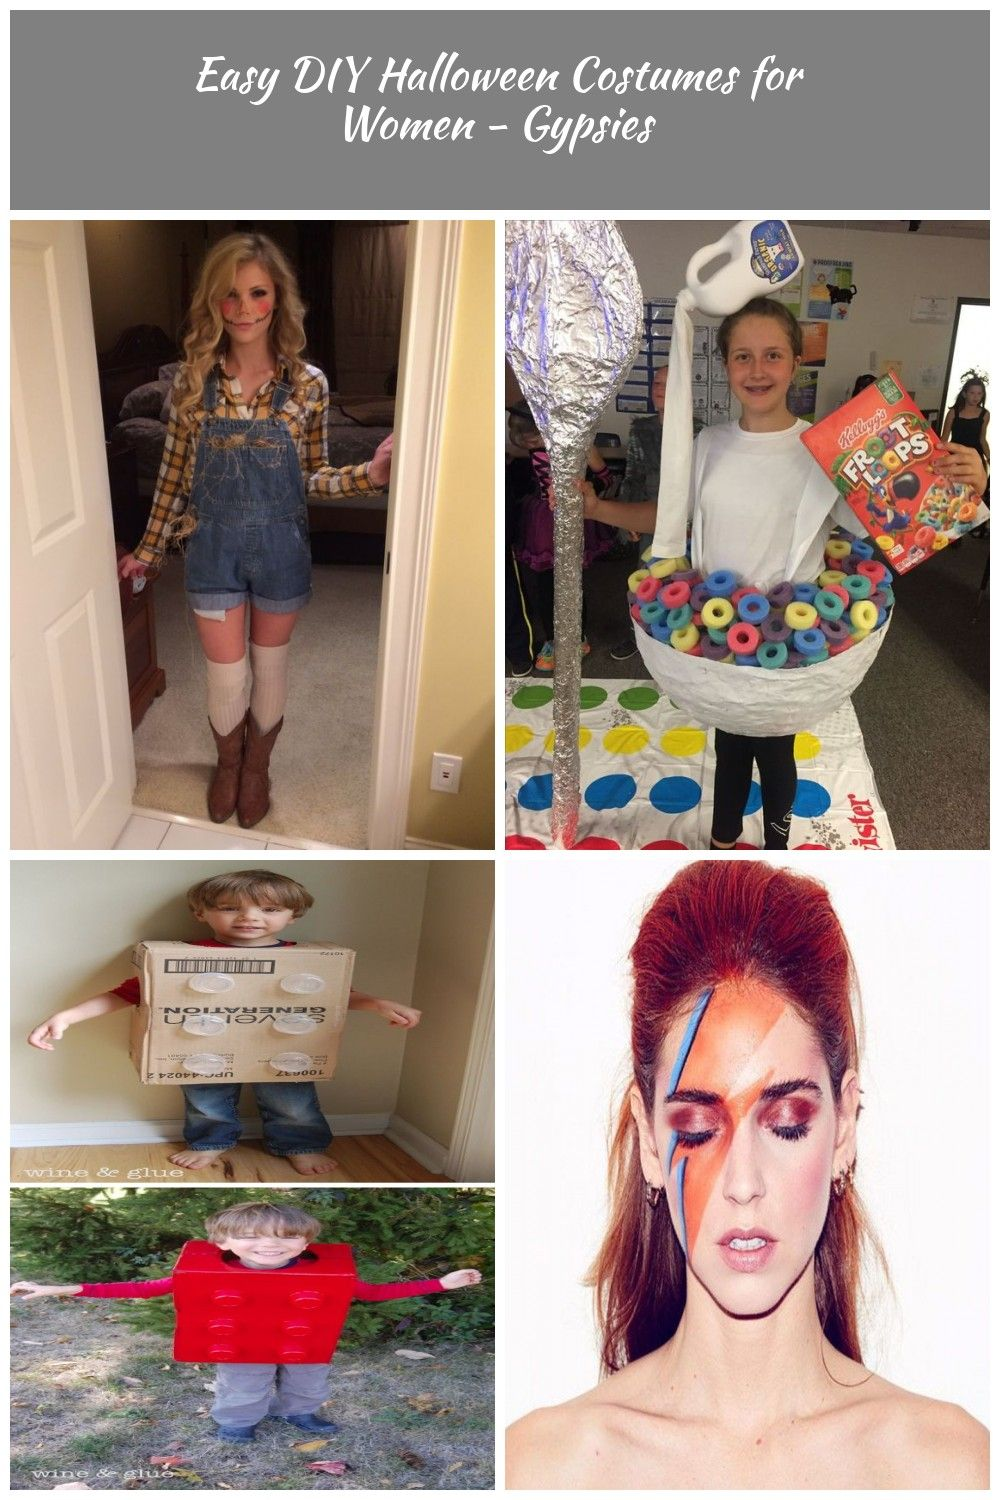 DIY Scarecrow Costume | 20+ Super Cool DIY Halloween Costumes for Women #diy costume Easy DIY Halloween Costumes for Women - Gypsies #scarecrowcostumediy